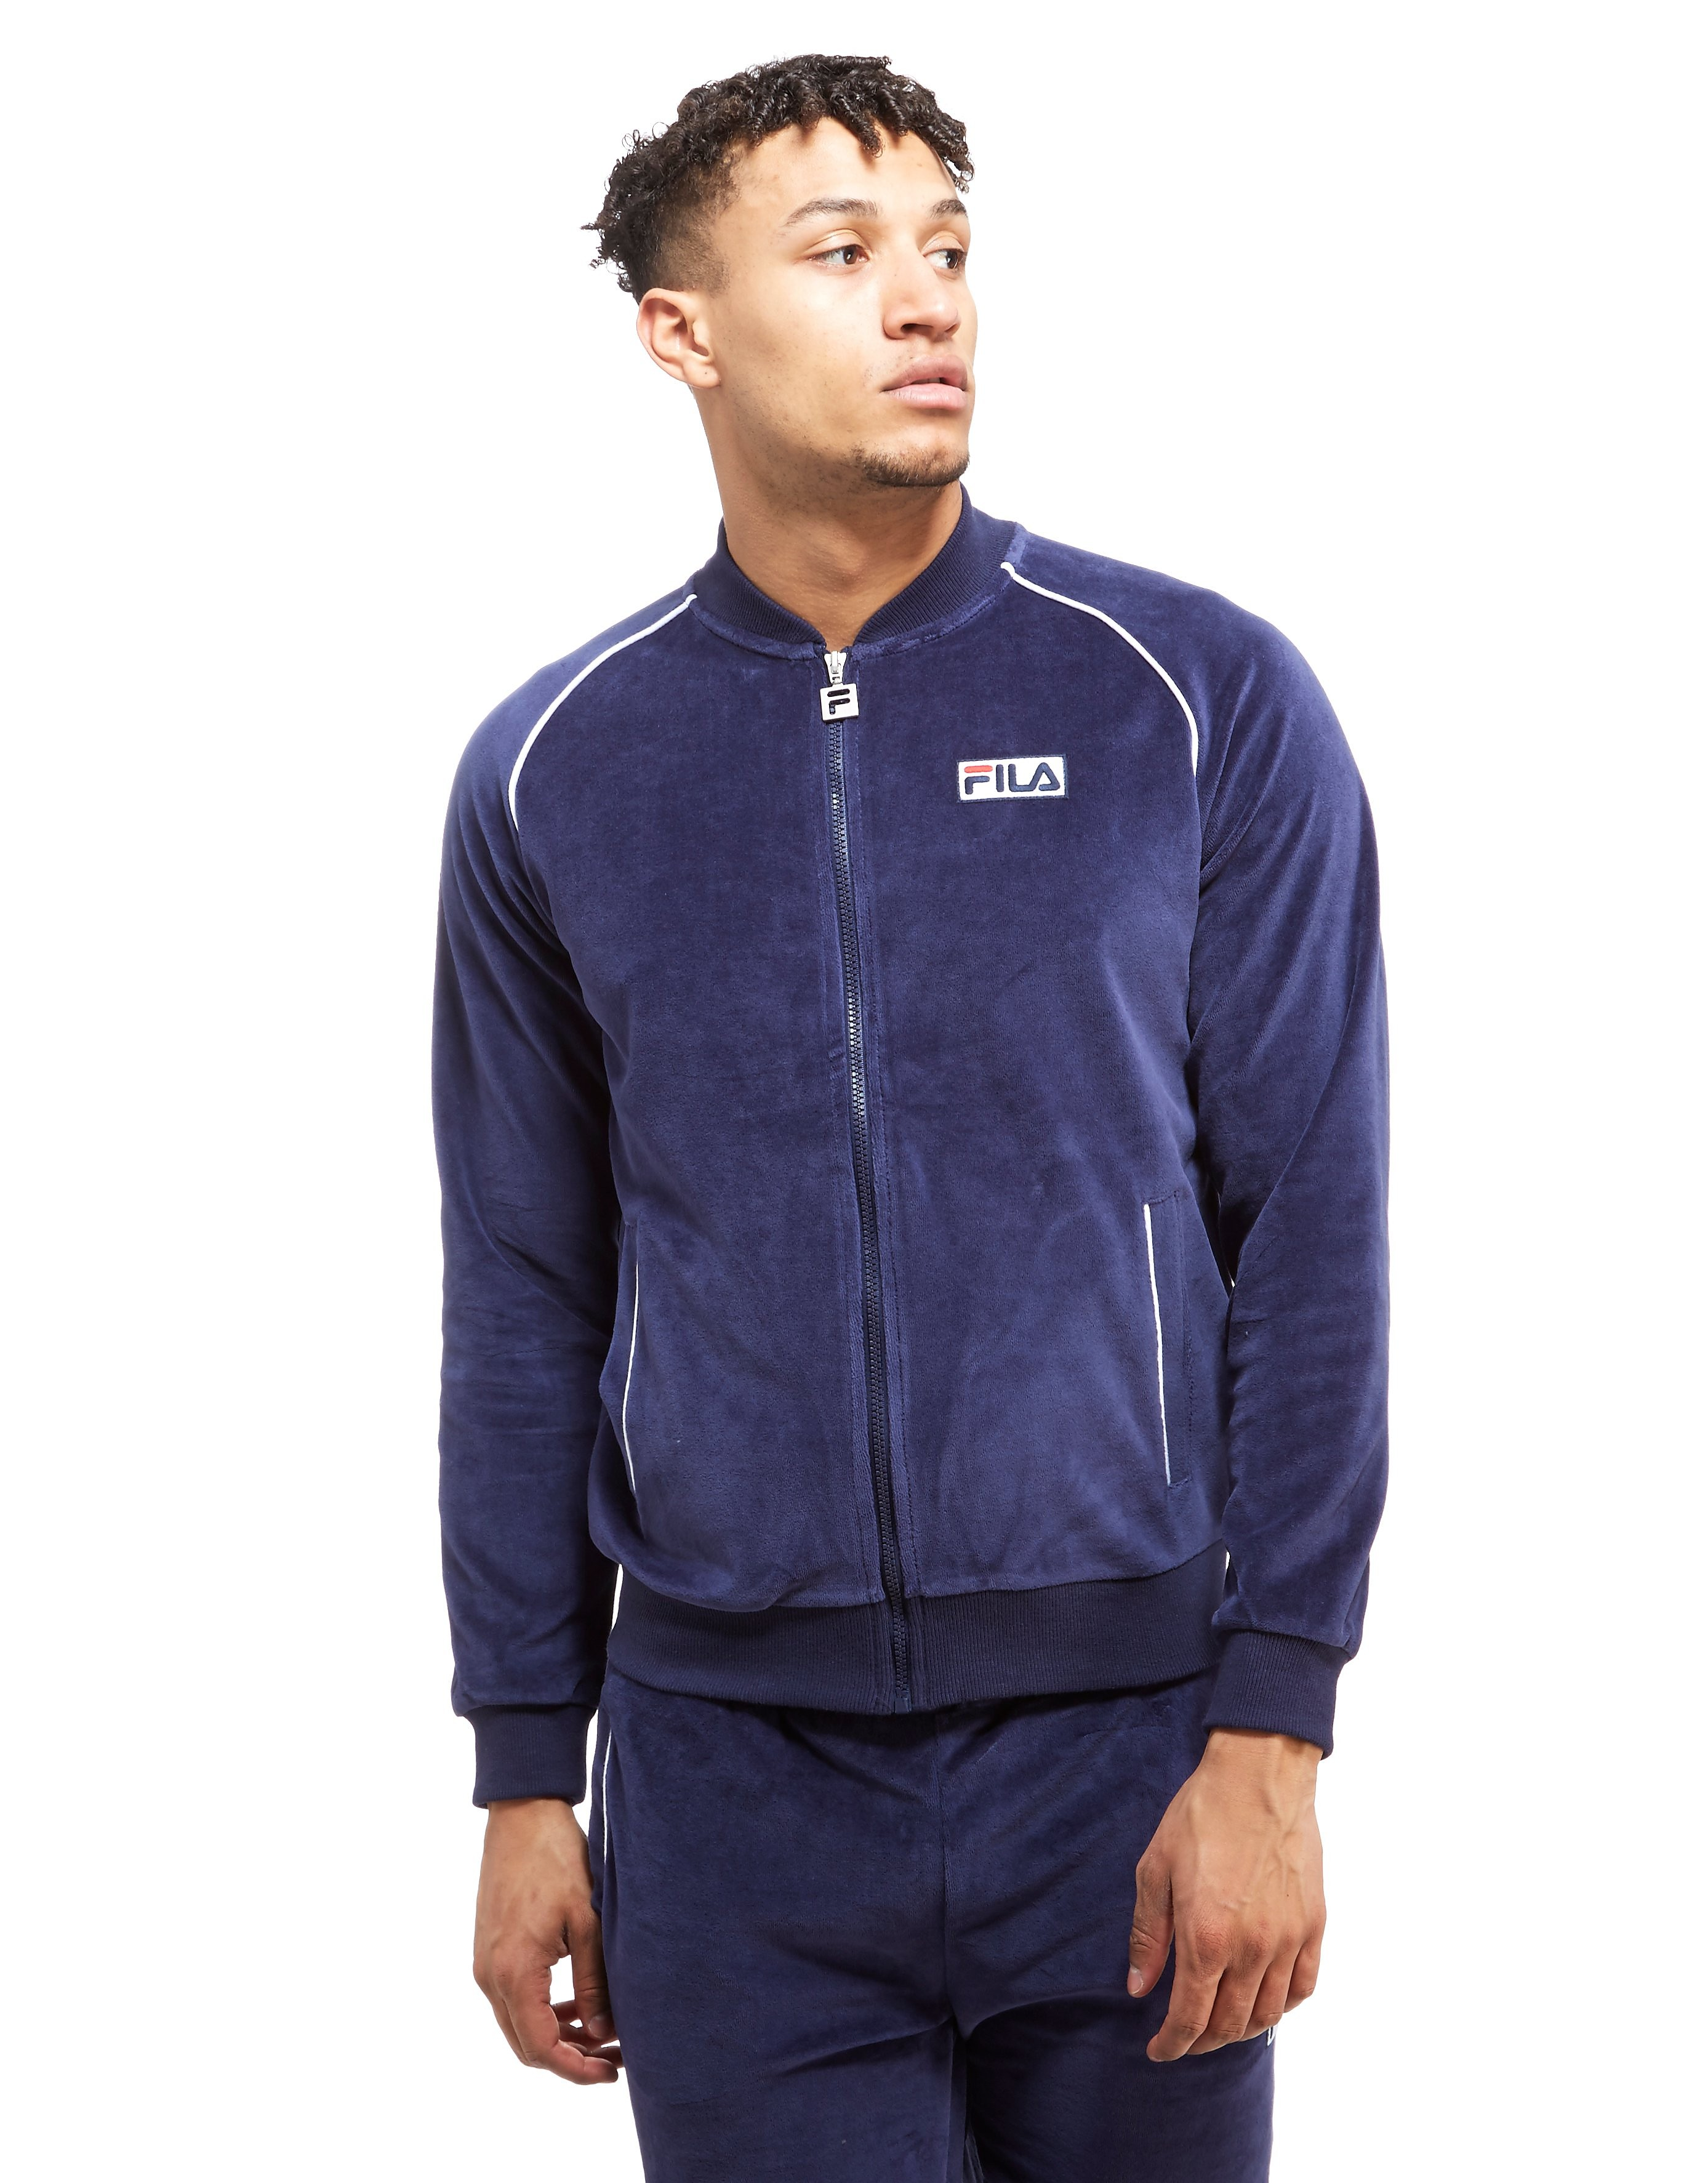 Fila Gioni Velour Track Top